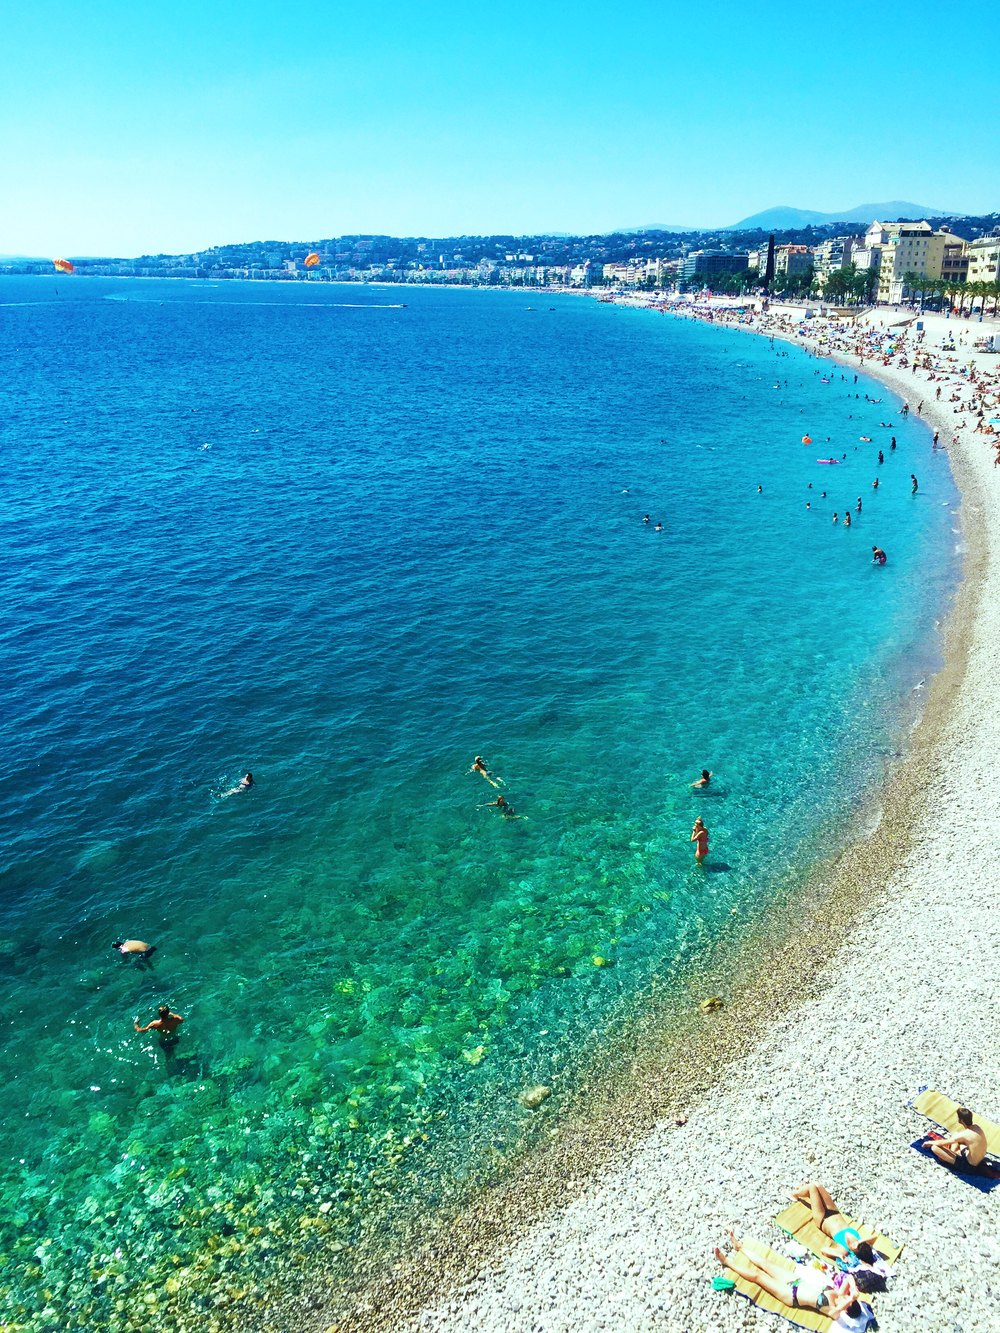 The beautiful beach in Nice during the day time